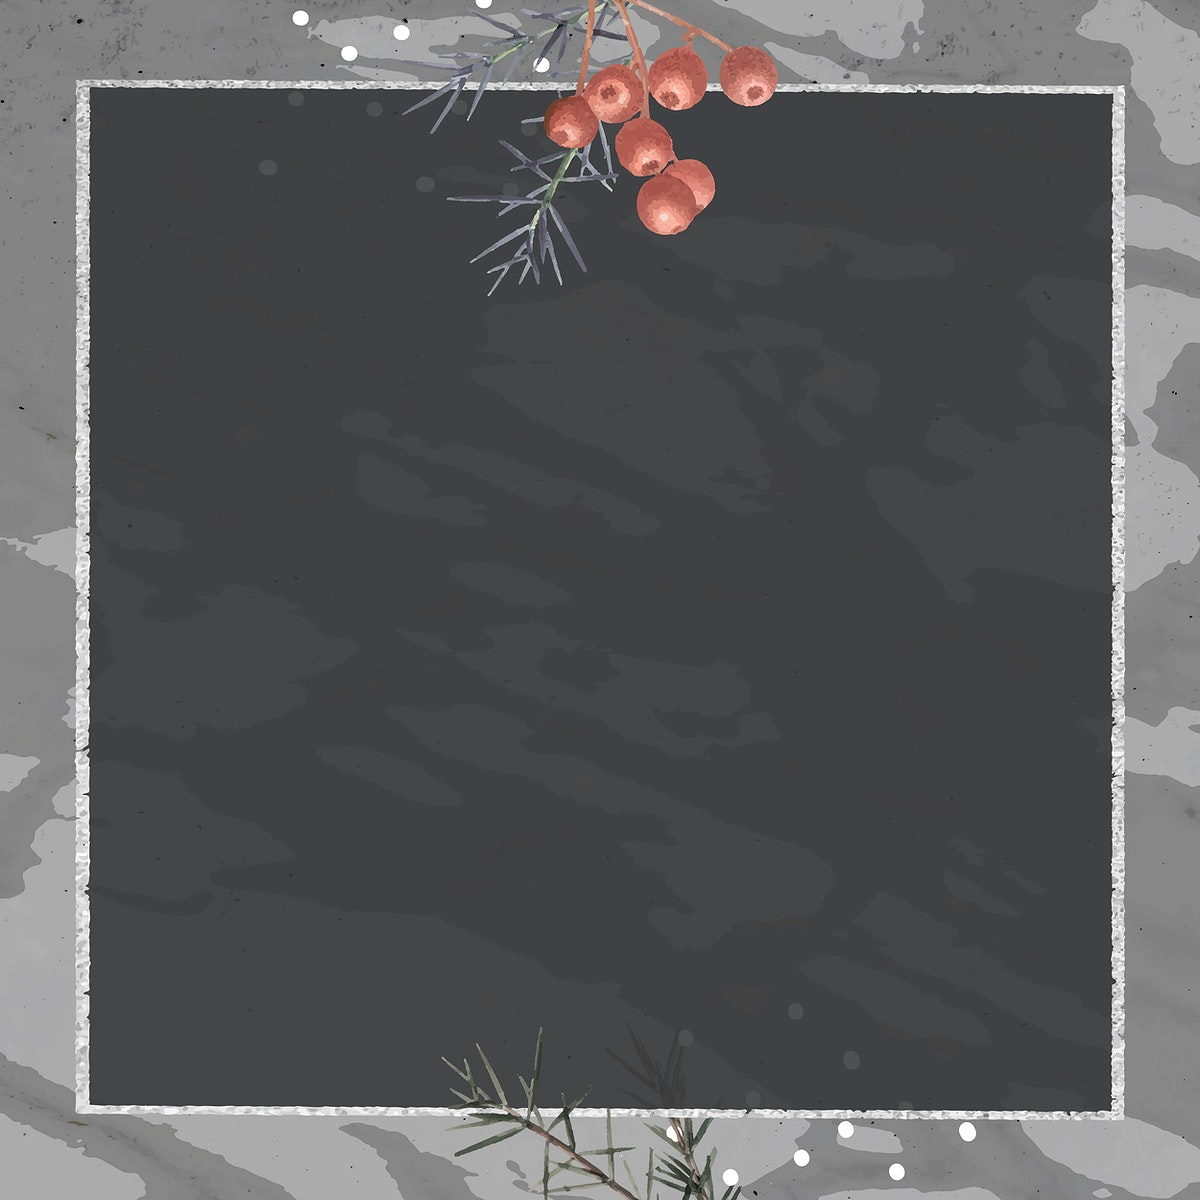 Square silver frame on minimal patterned background vector